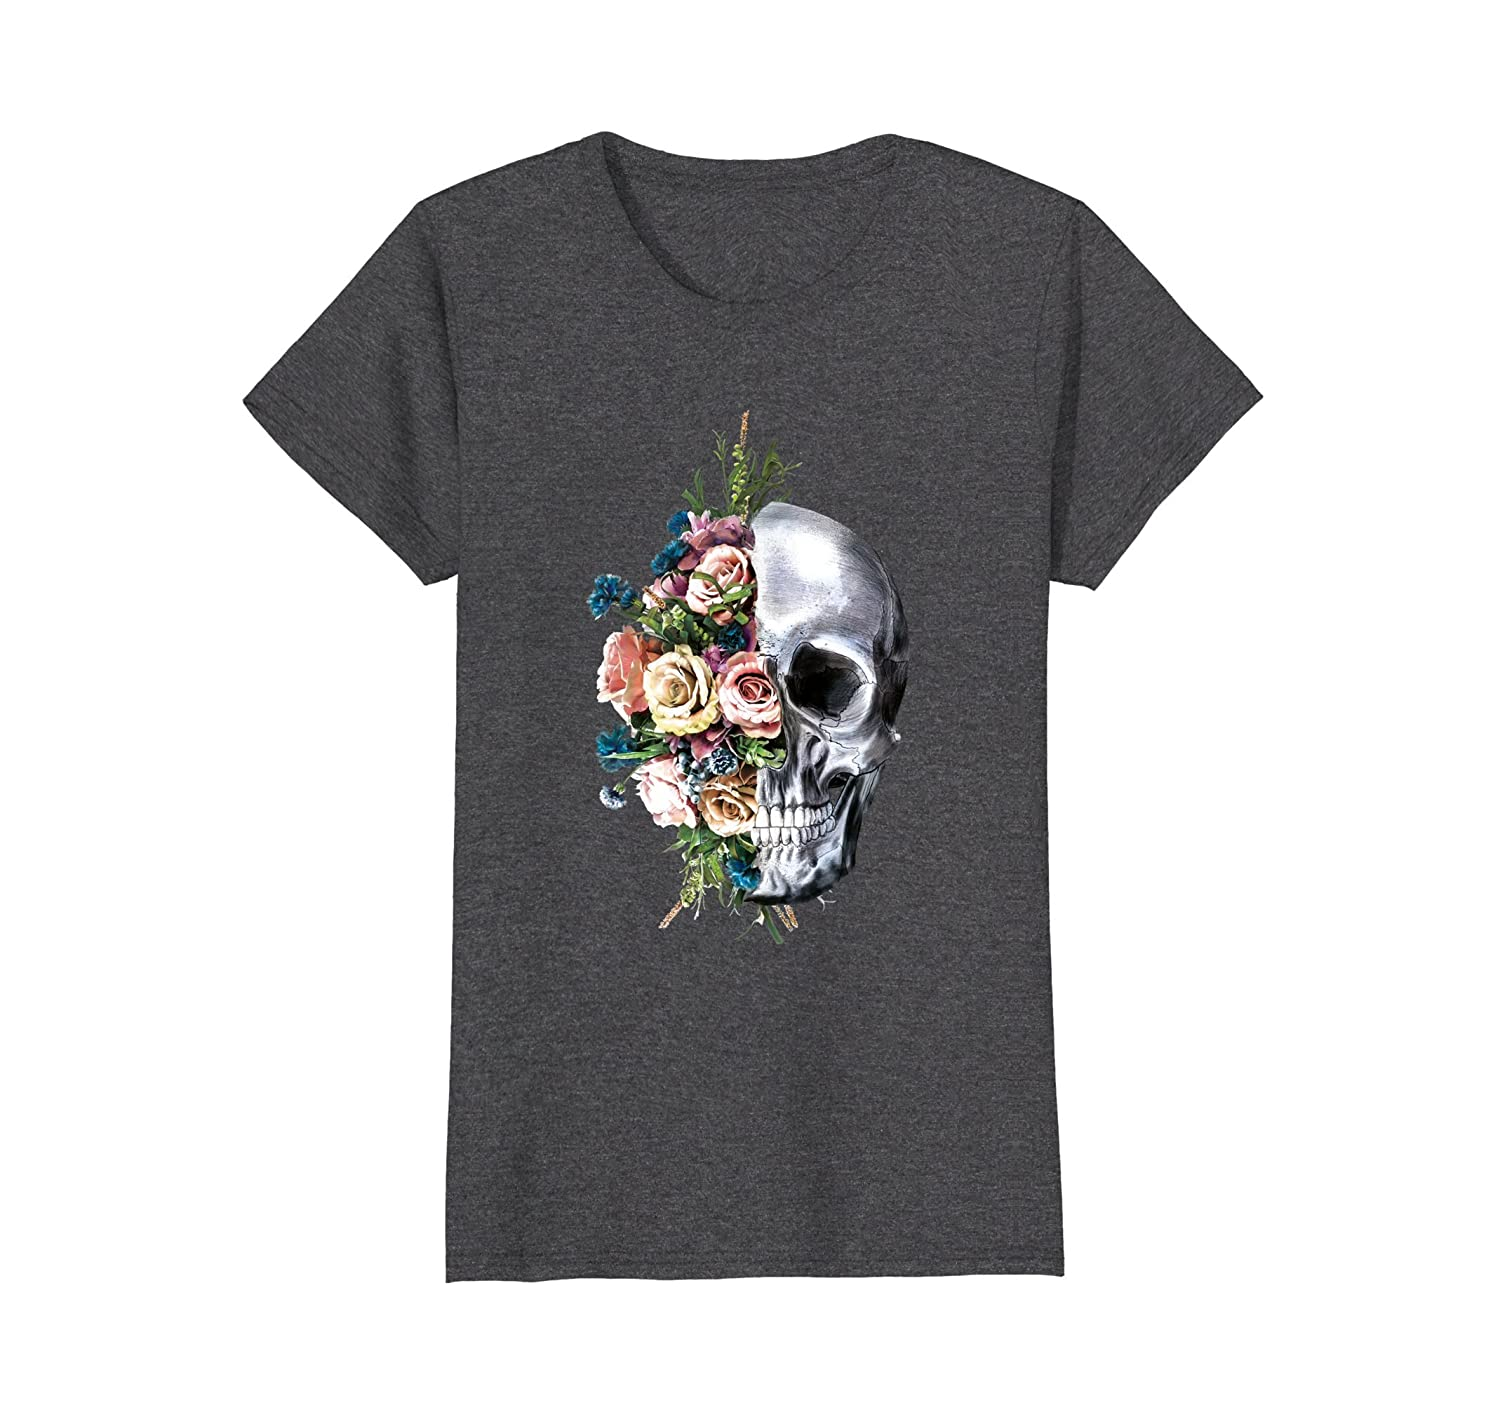 Womens Flower Skull T-Shirt Sugar Roses for Women Girls Halloween-mt